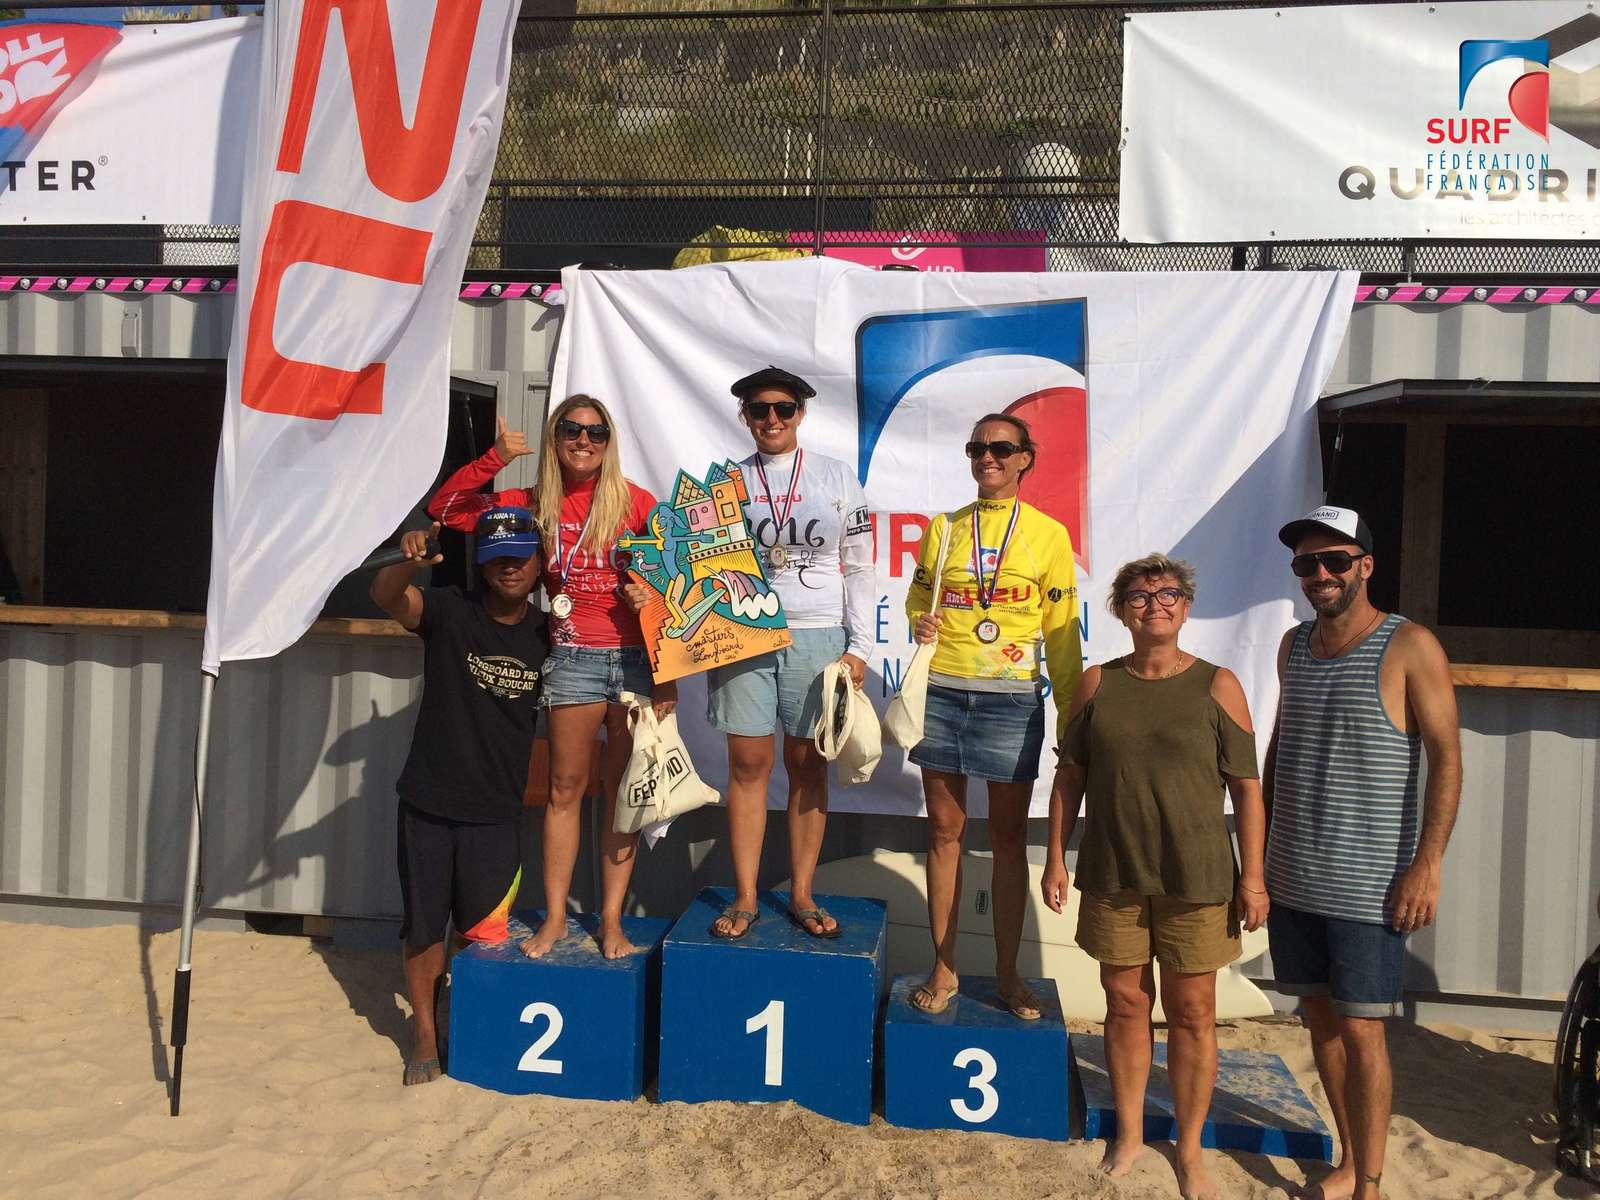 Podium Dames Masters France Masters longboard FFS